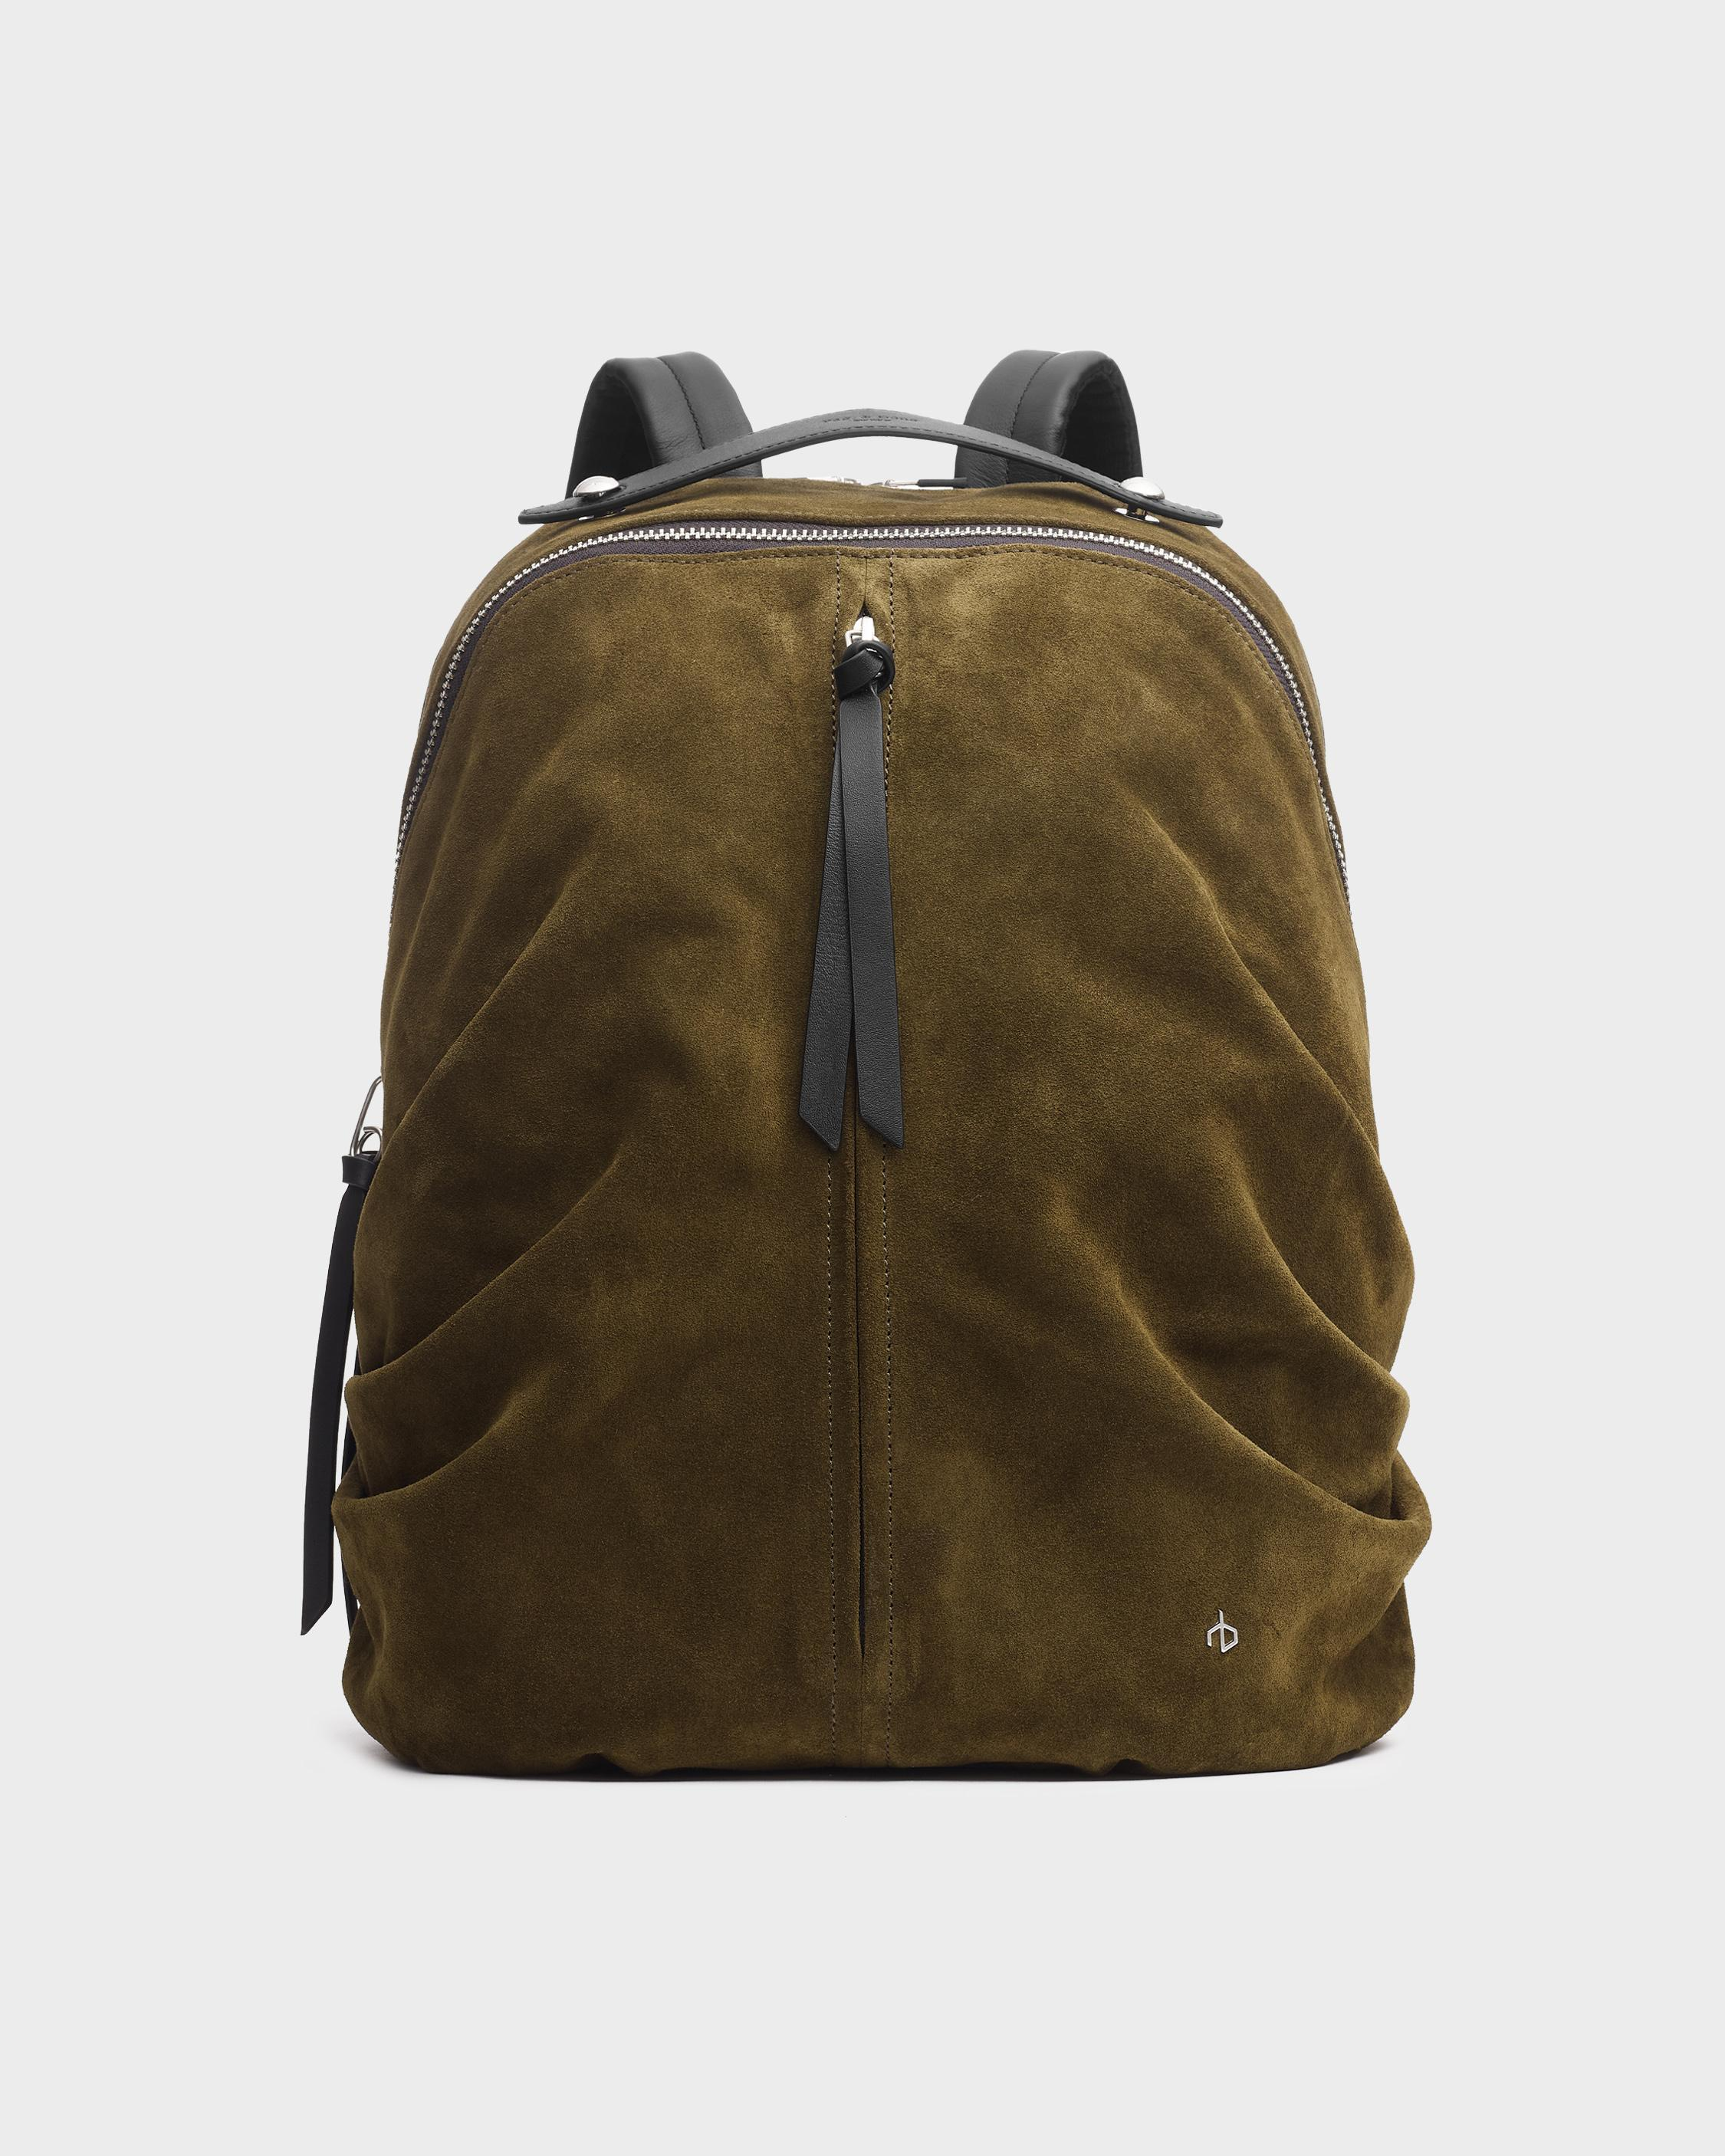 Commuter backpack - suede 0